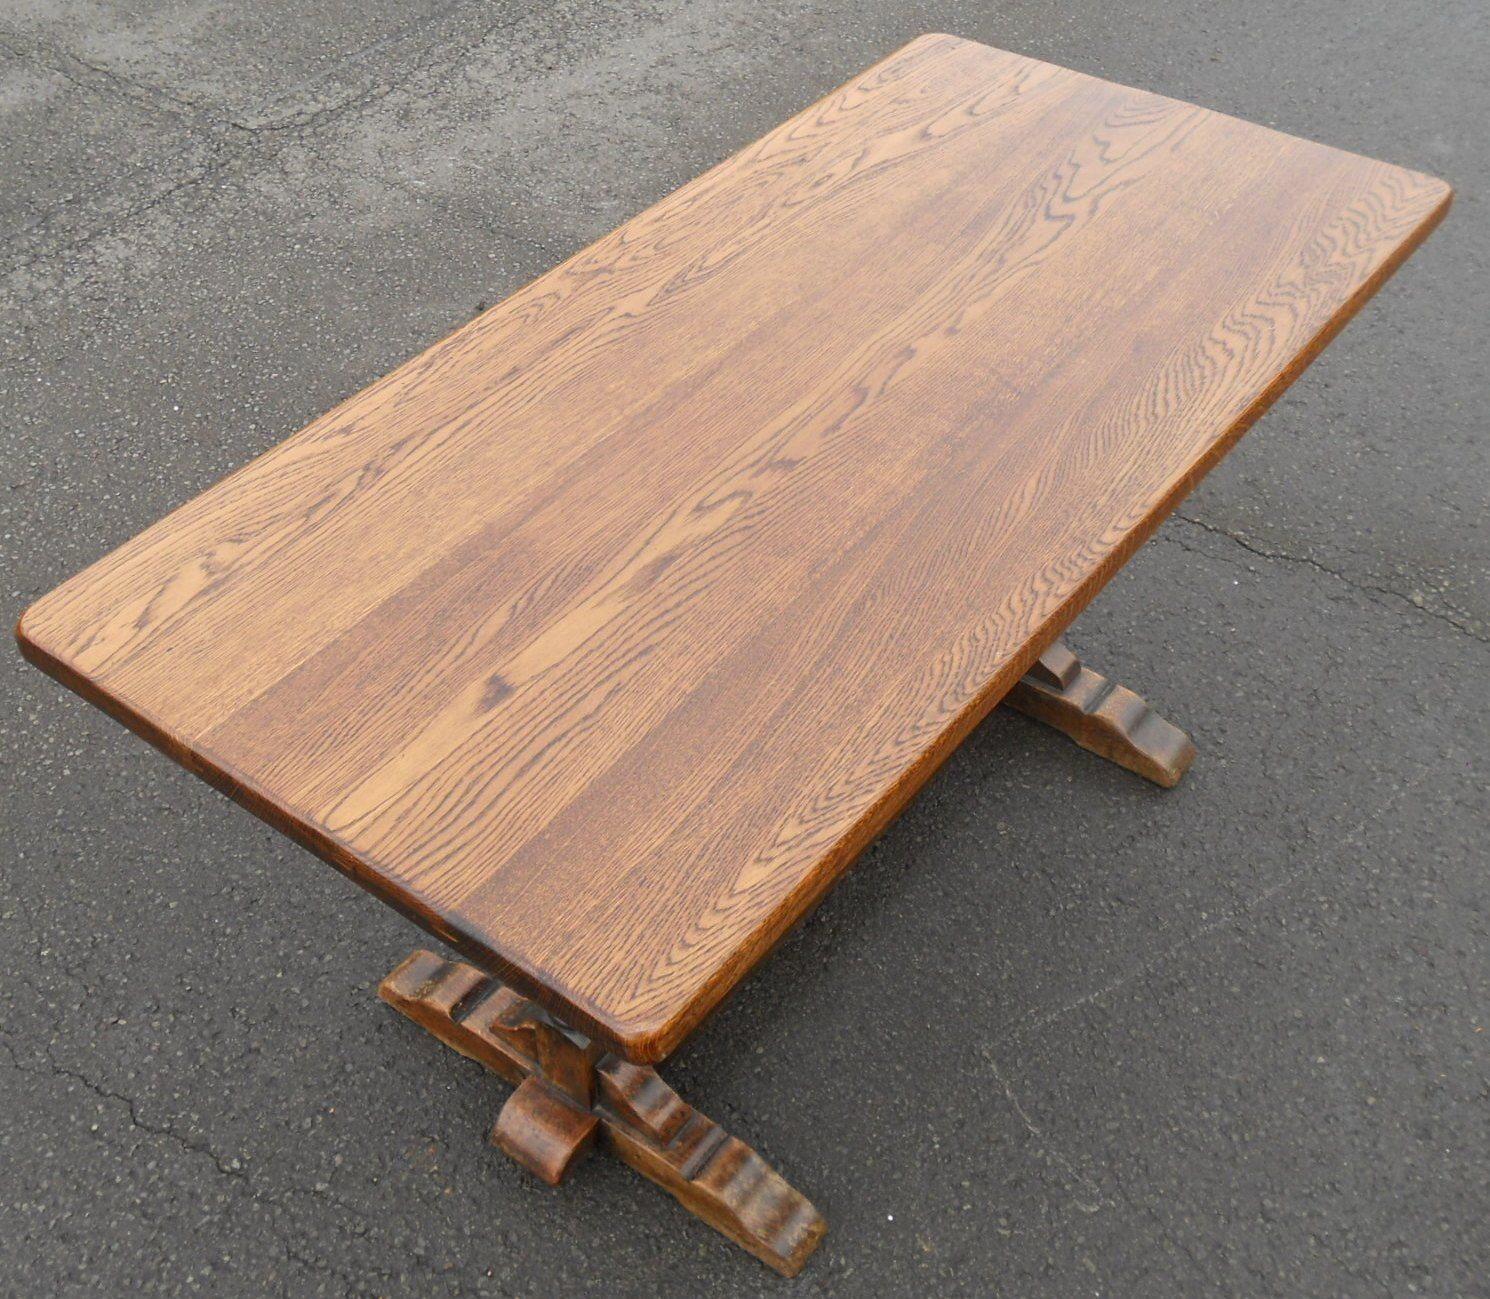 Quality Oak Refectory Dining Table : quality oak refectory dining table 5 4604 p from www.harrisonantiquefurniture.co.uk size 1490 x 1299 jpeg 360kB